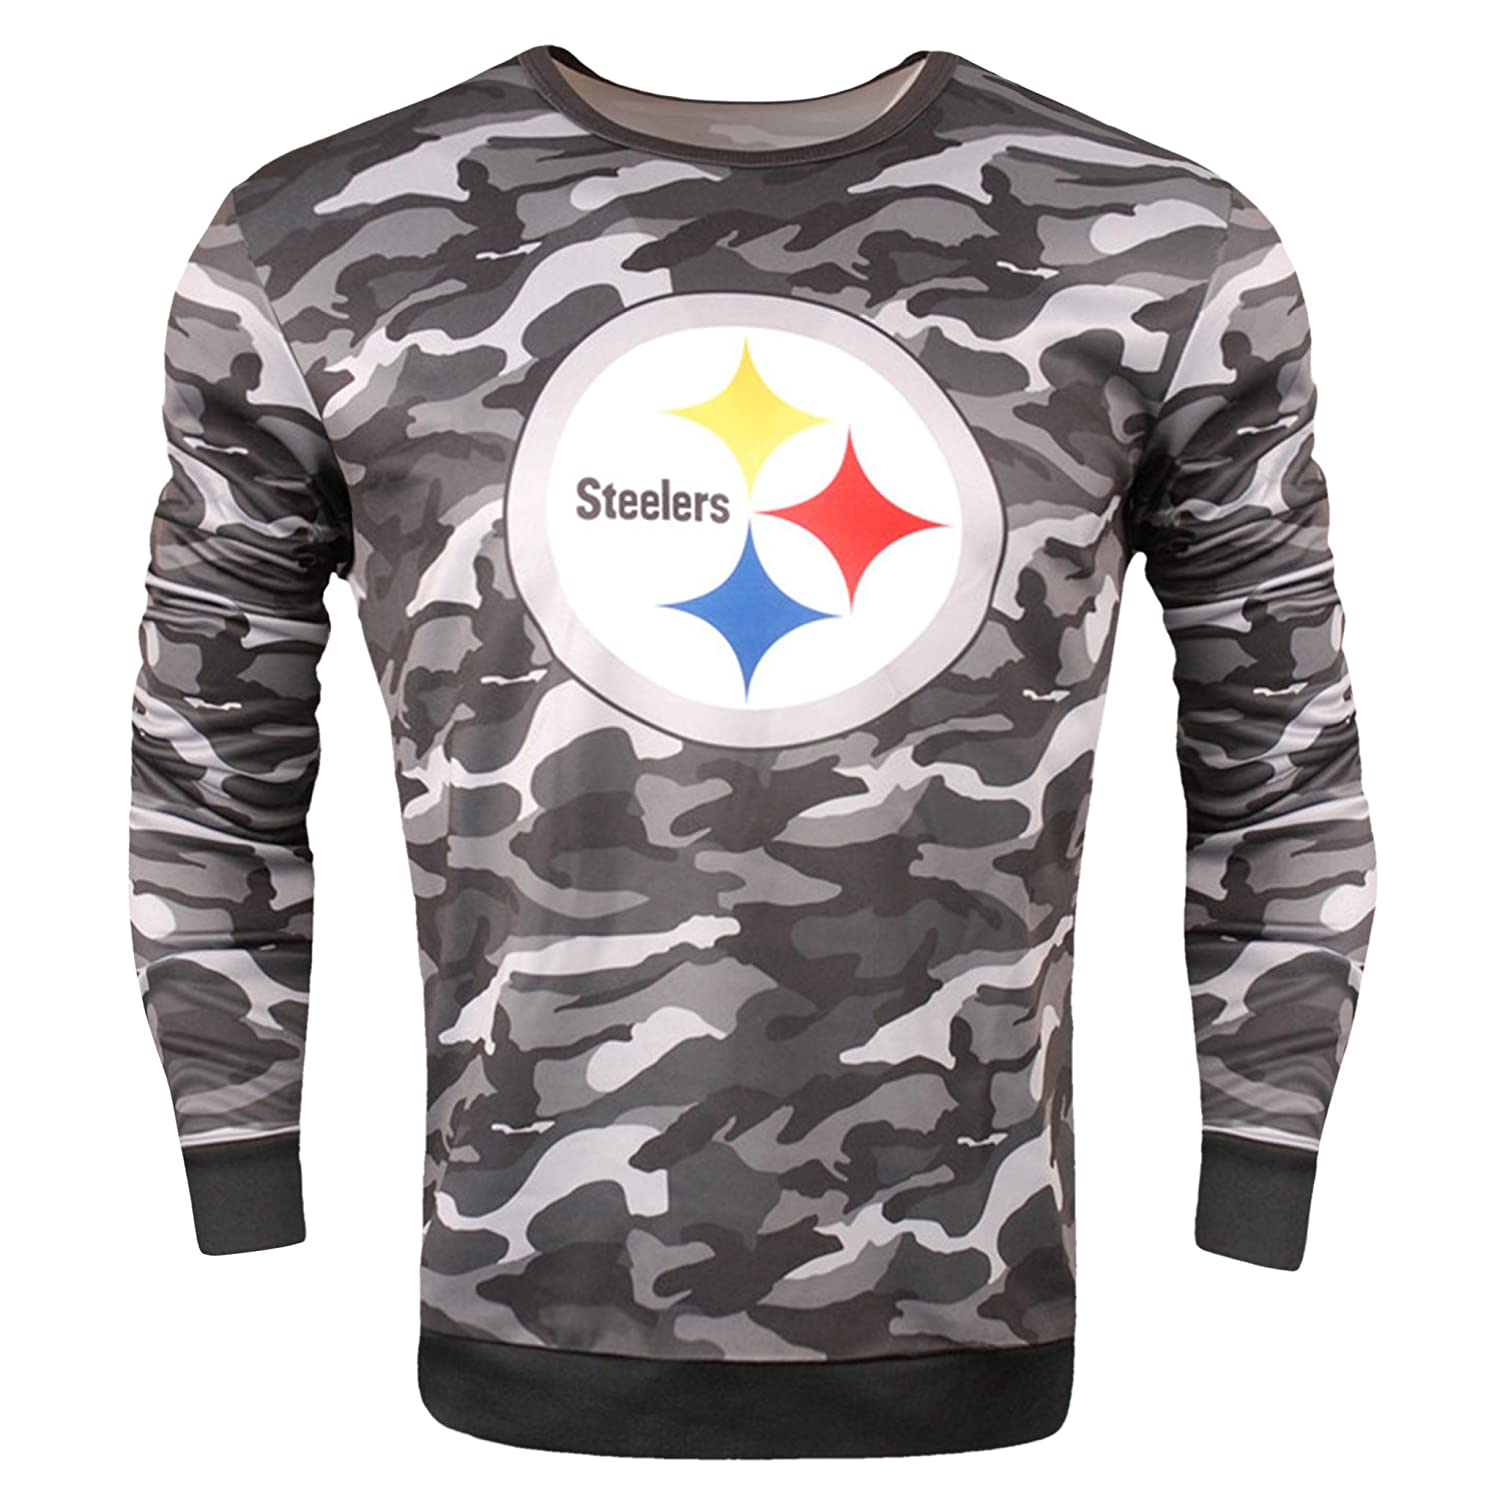 separation shoes 2c863 51d91 Amazon.com: NFL Pittsburgh Steelers Camo Sweatshirt: Clothing